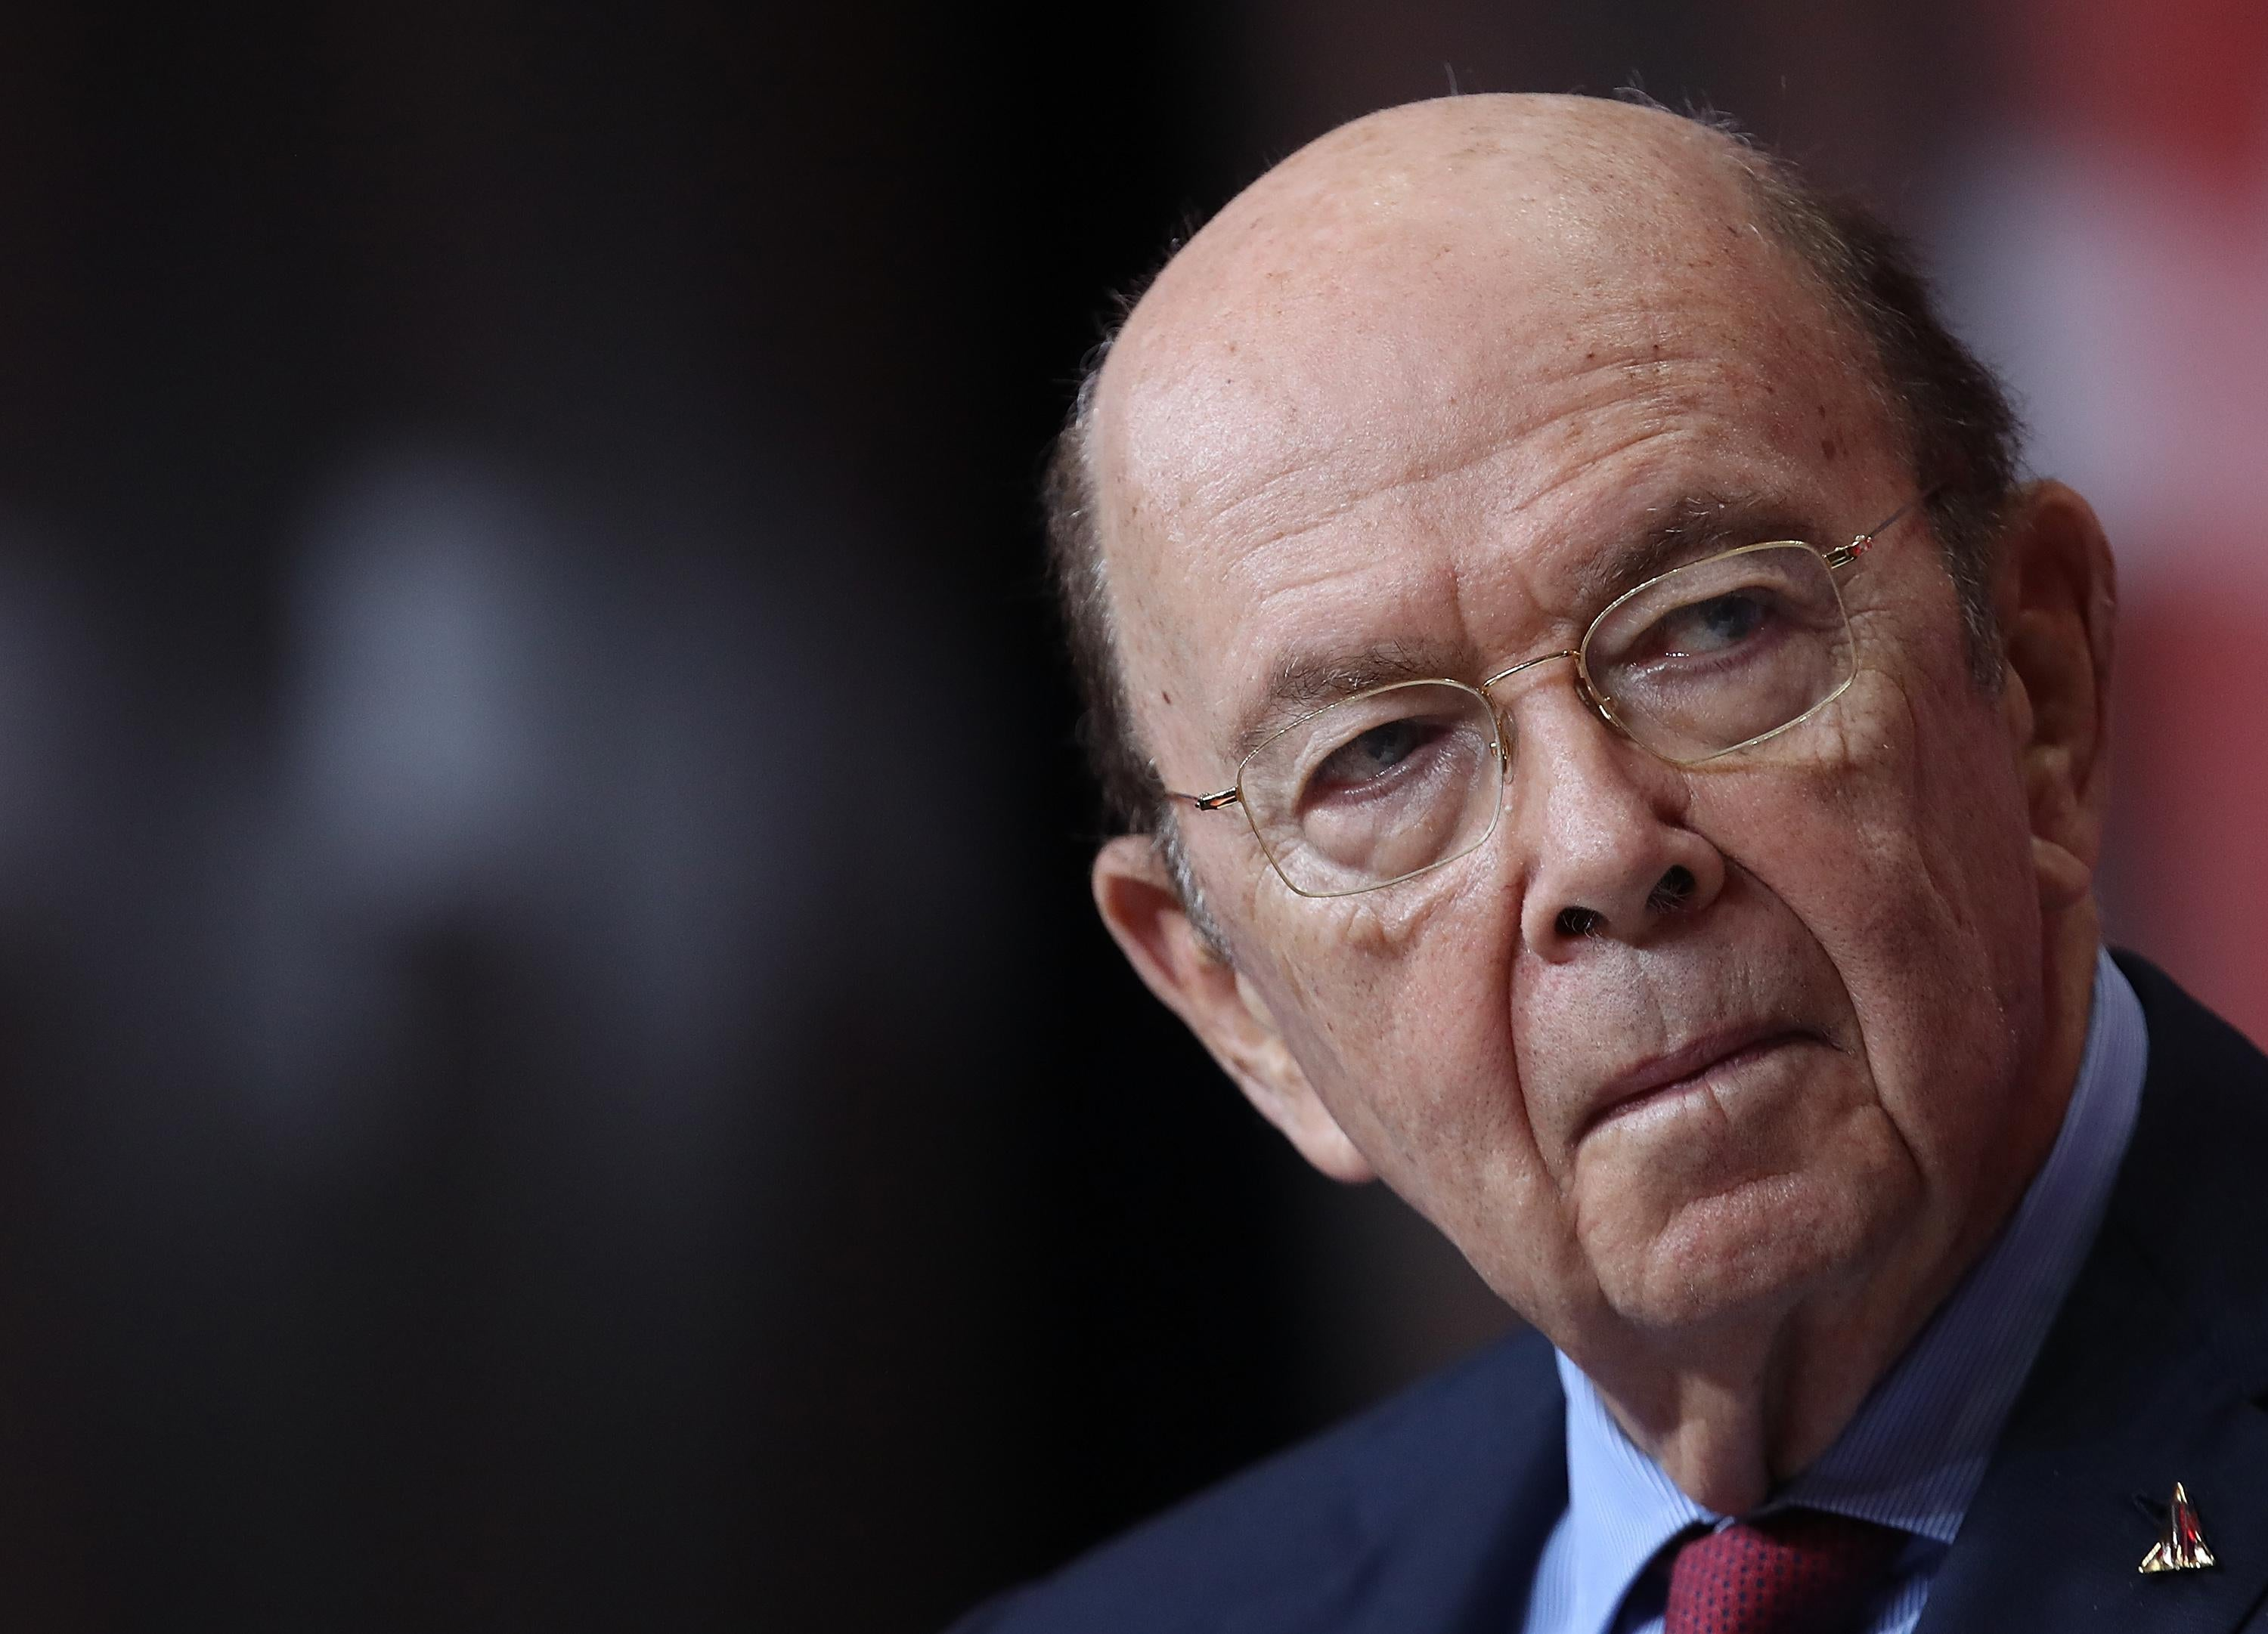 U.S. Secretary of Commerce Wilbur Ross speaks at the SelectUSA 2018 Investment Summit on June 22, 2018, in National Harbor, Maryland.